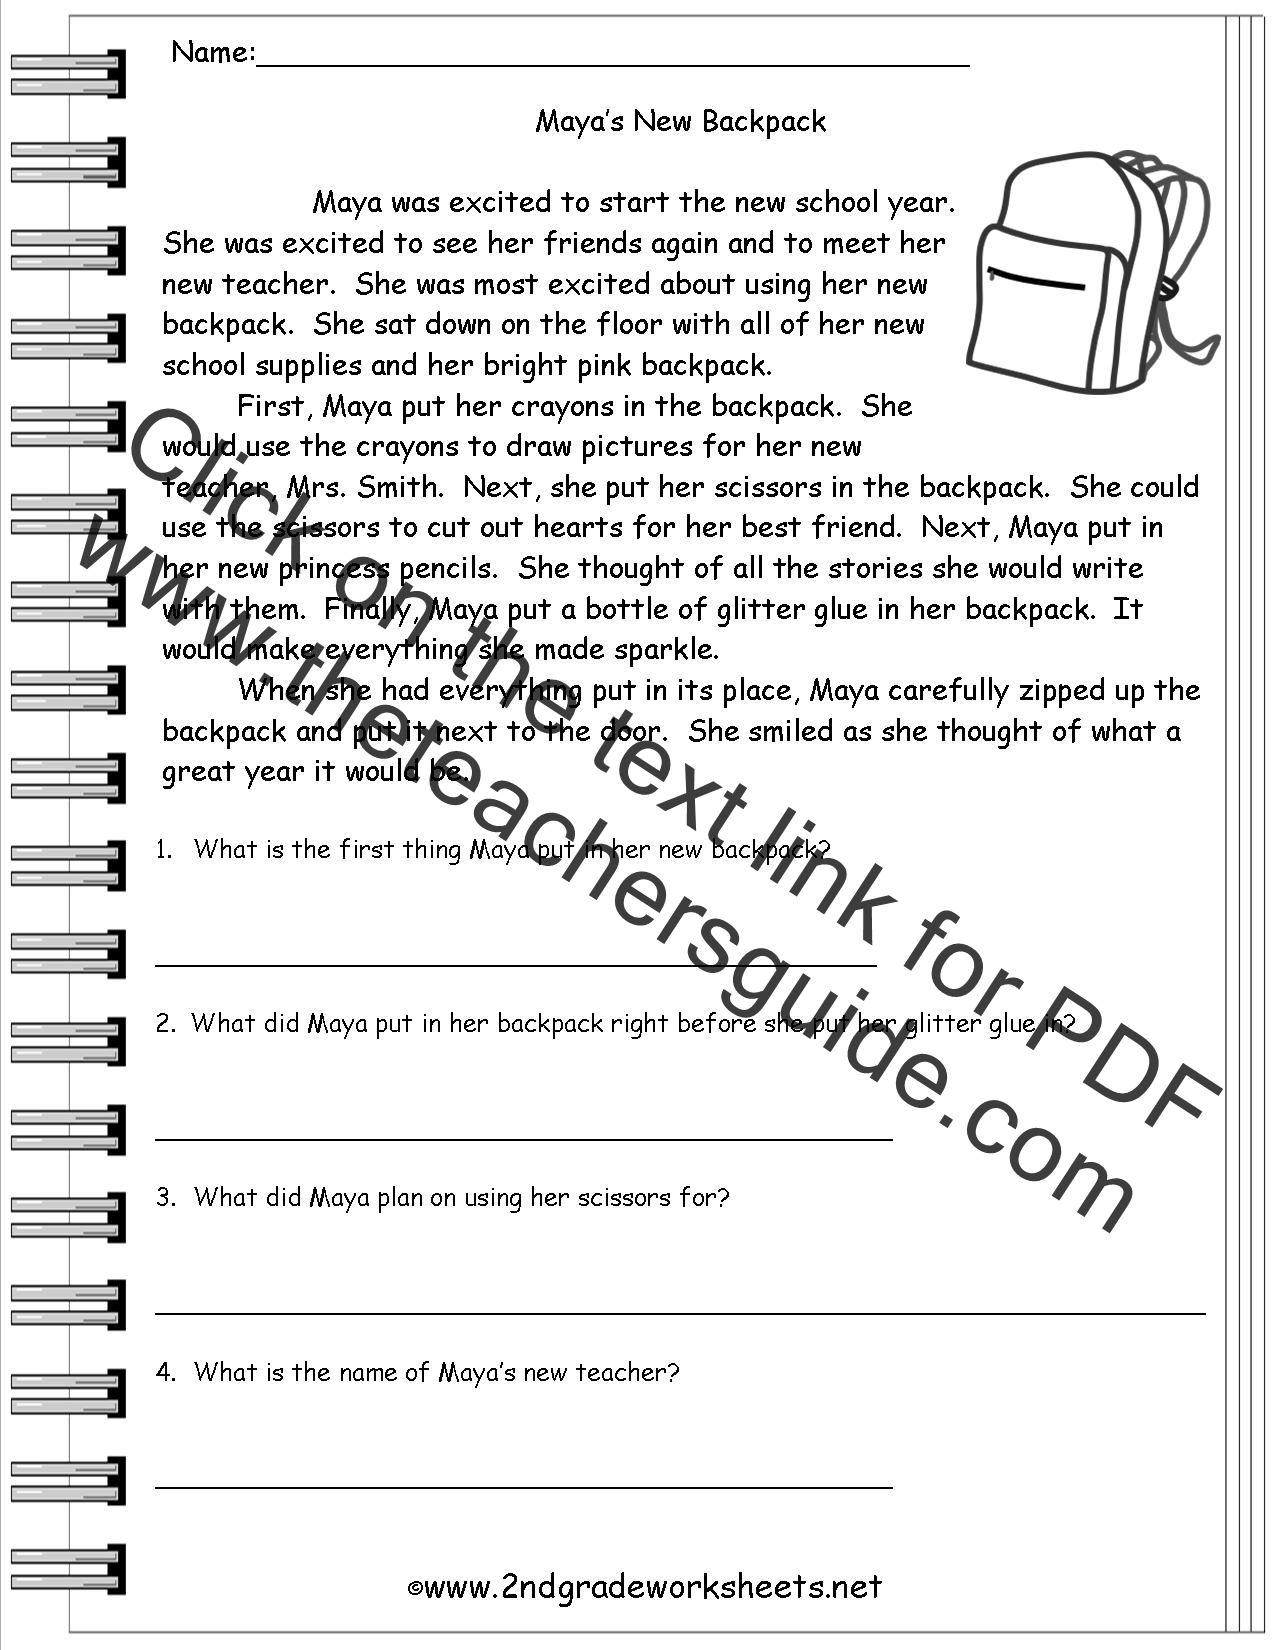 Worksheets Reading Comprehension Worksheets 4th Grade reading worksheeets literature worksheets